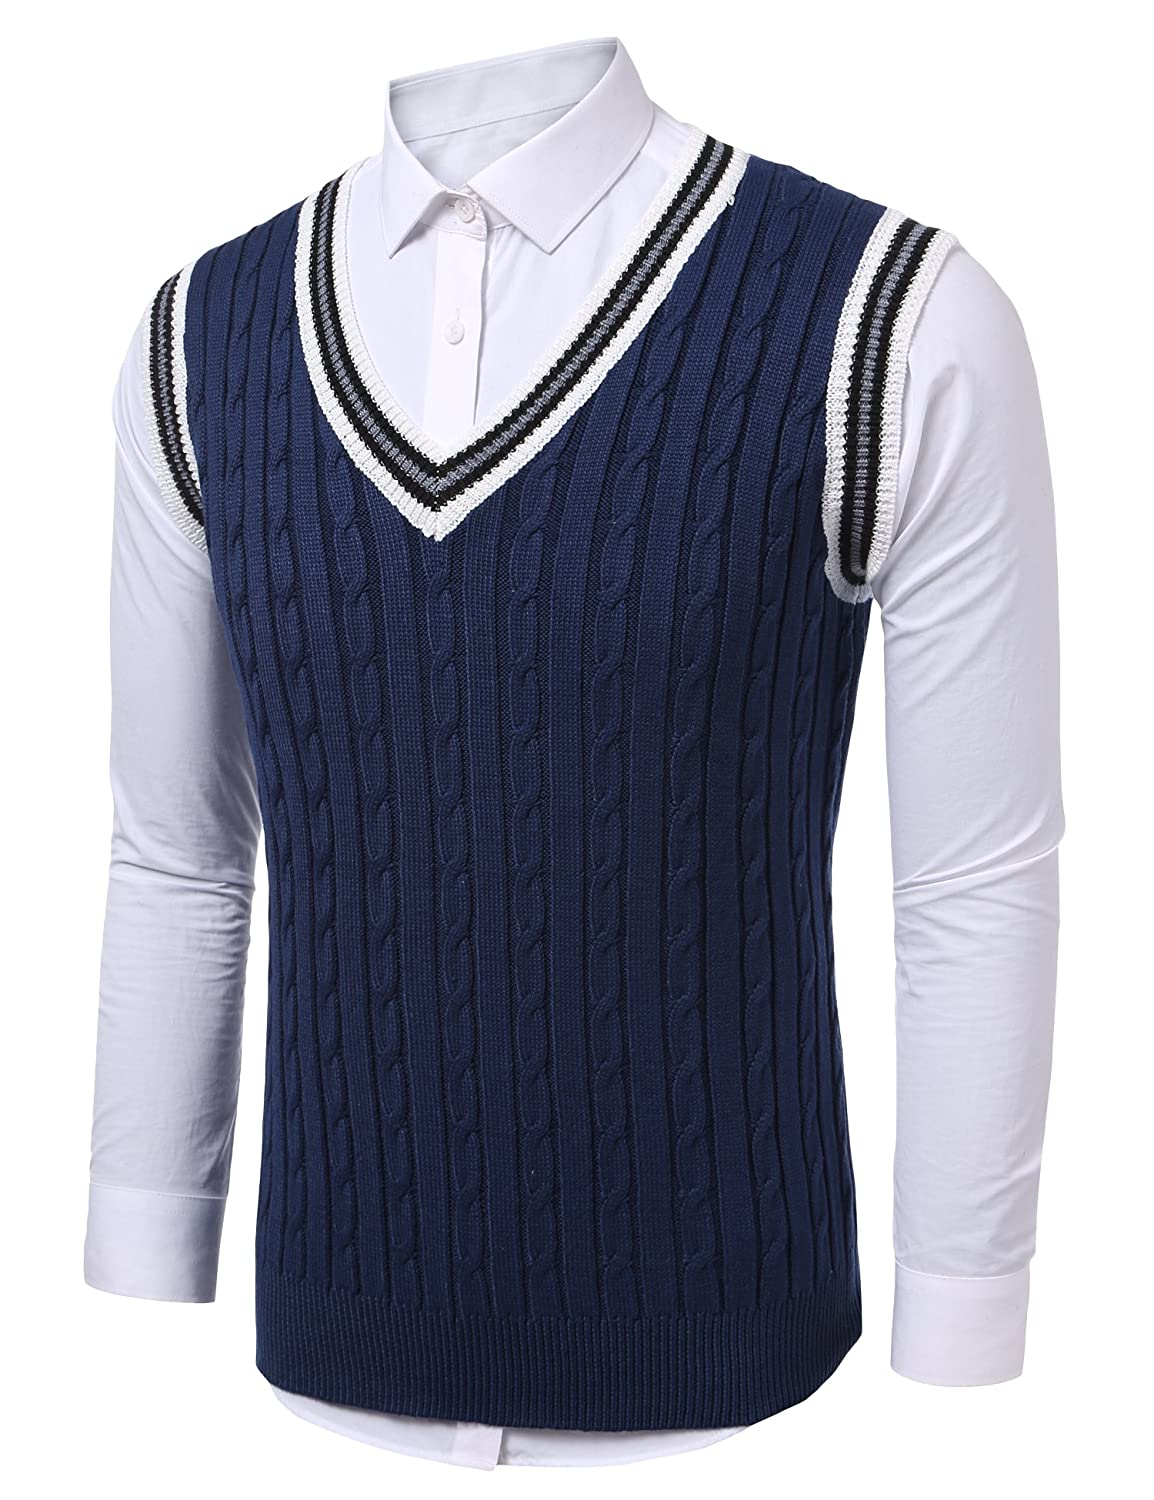 Men's Vintage Vests, Sweater Vests Coofandy Mens Casual Knitted Sweater Slim Fit Pullover Cable Sweater Links-Vest $27.99 AT vintagedancer.com